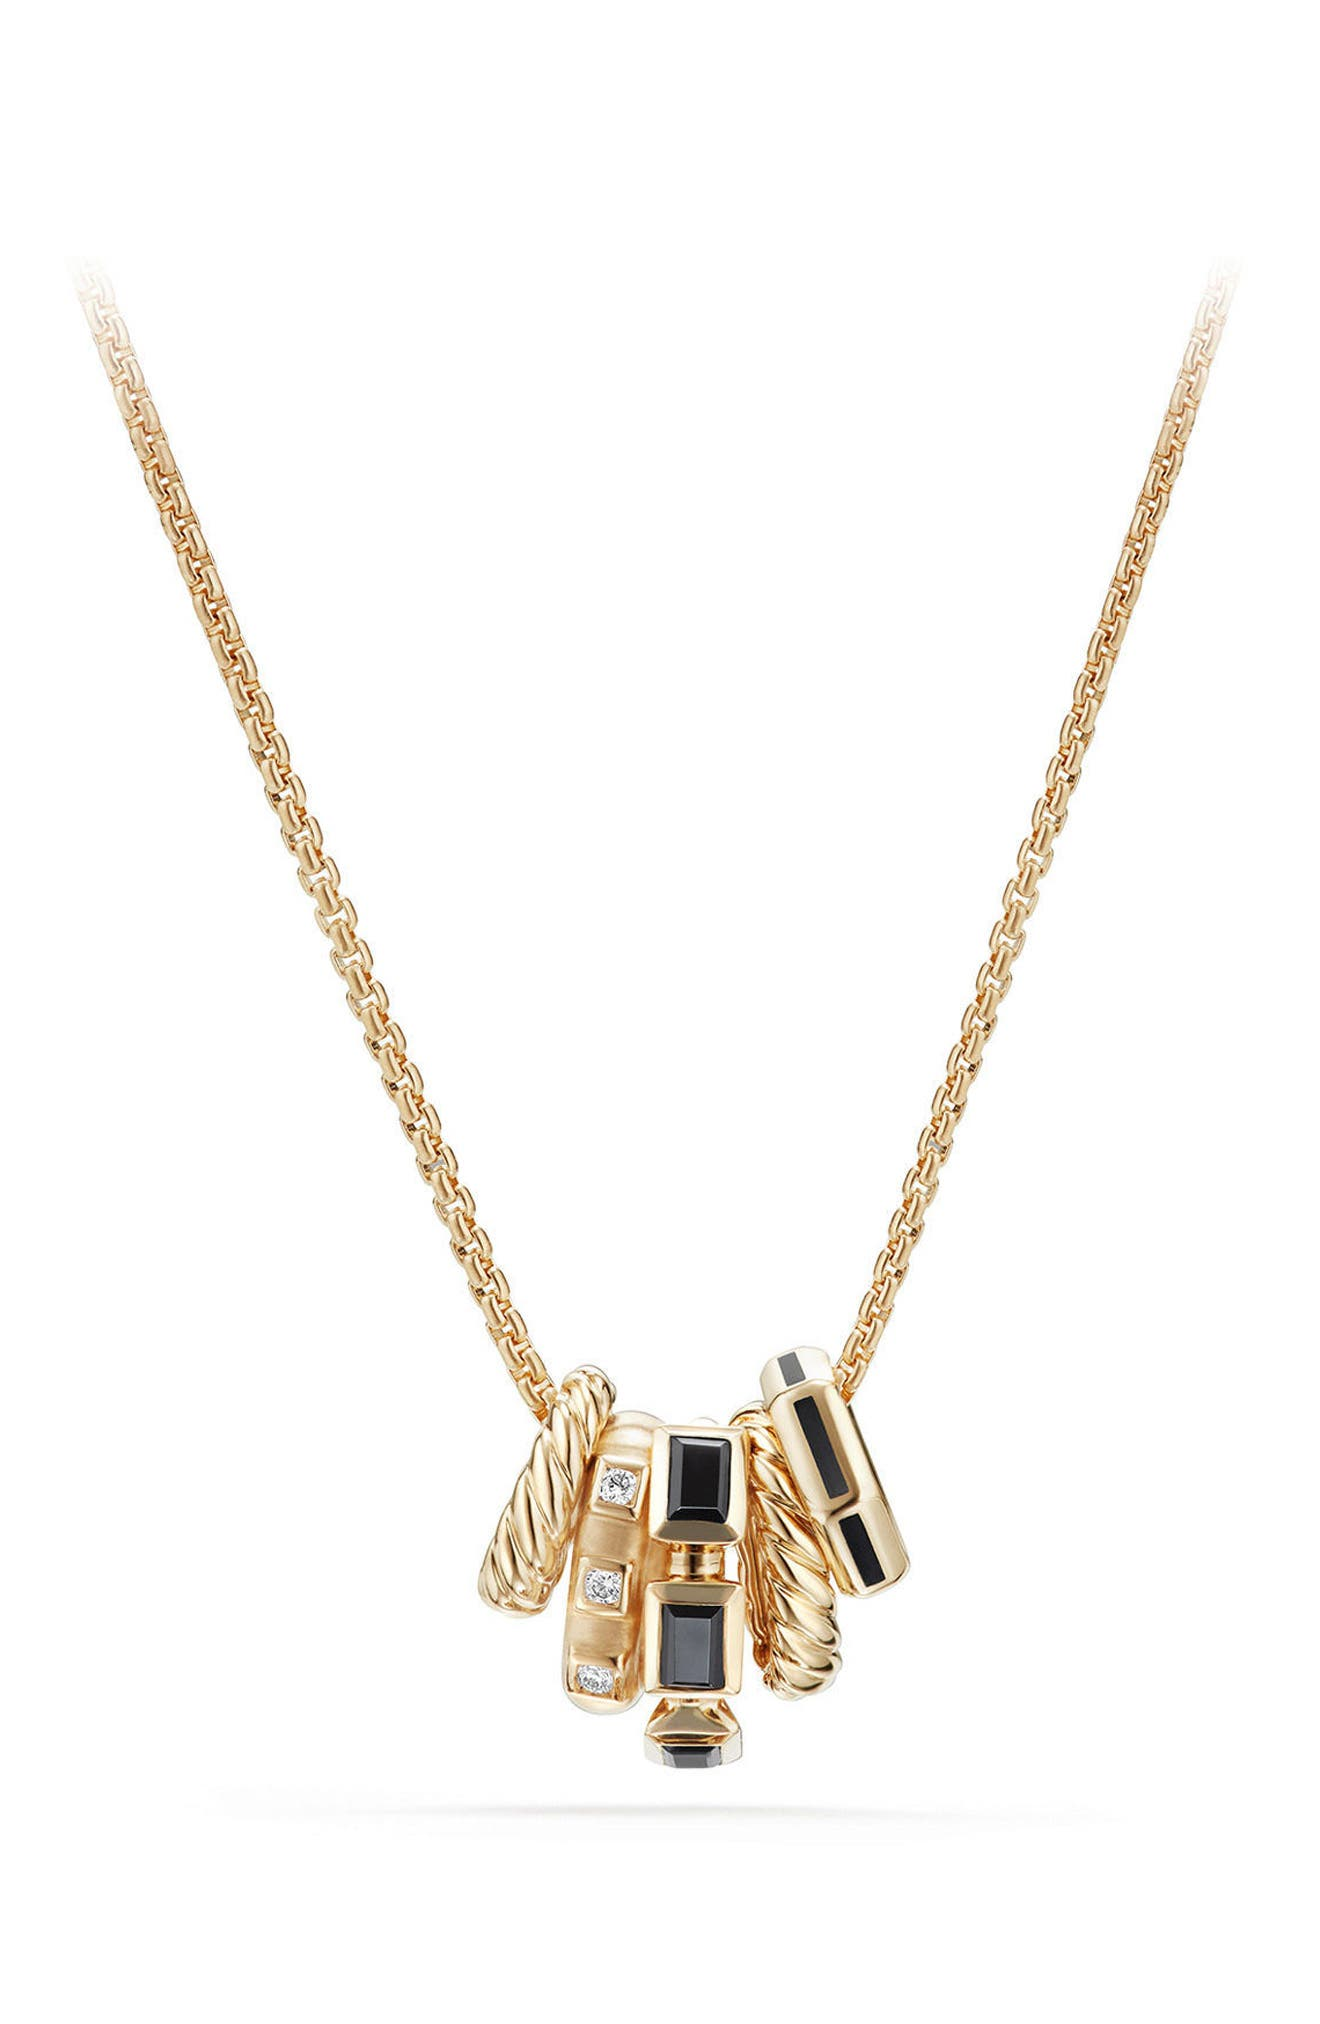 Stax Pendant Necklace with Diamonds in 18K Gold,                             Main thumbnail 1, color,                             BLACK SPINEL